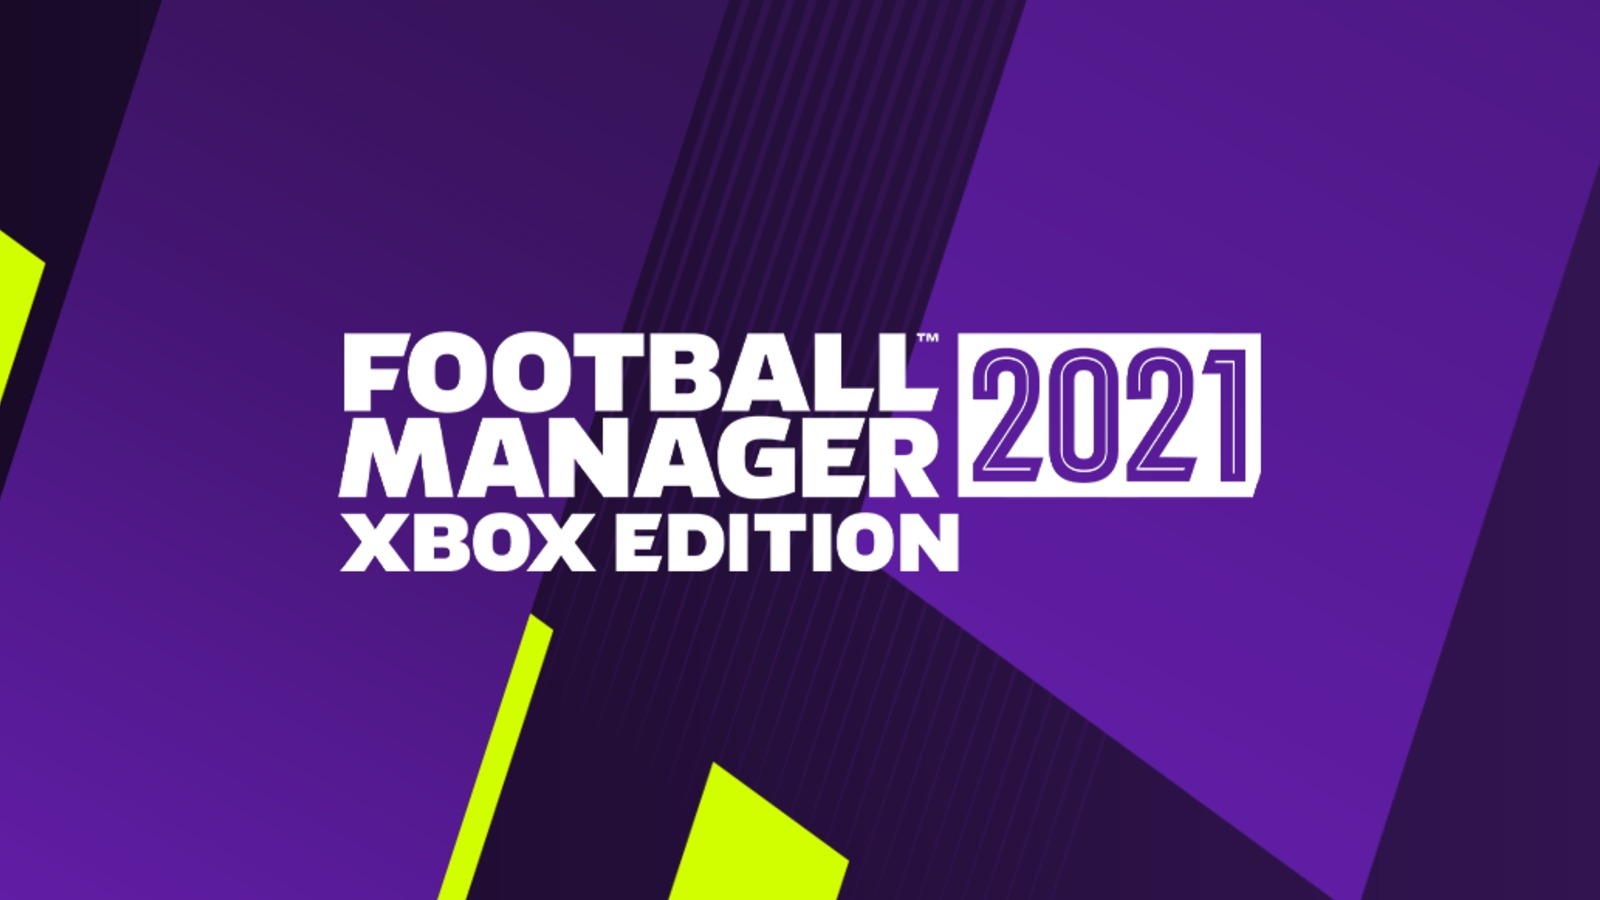 Football Manager 21 Xbox Edition release date